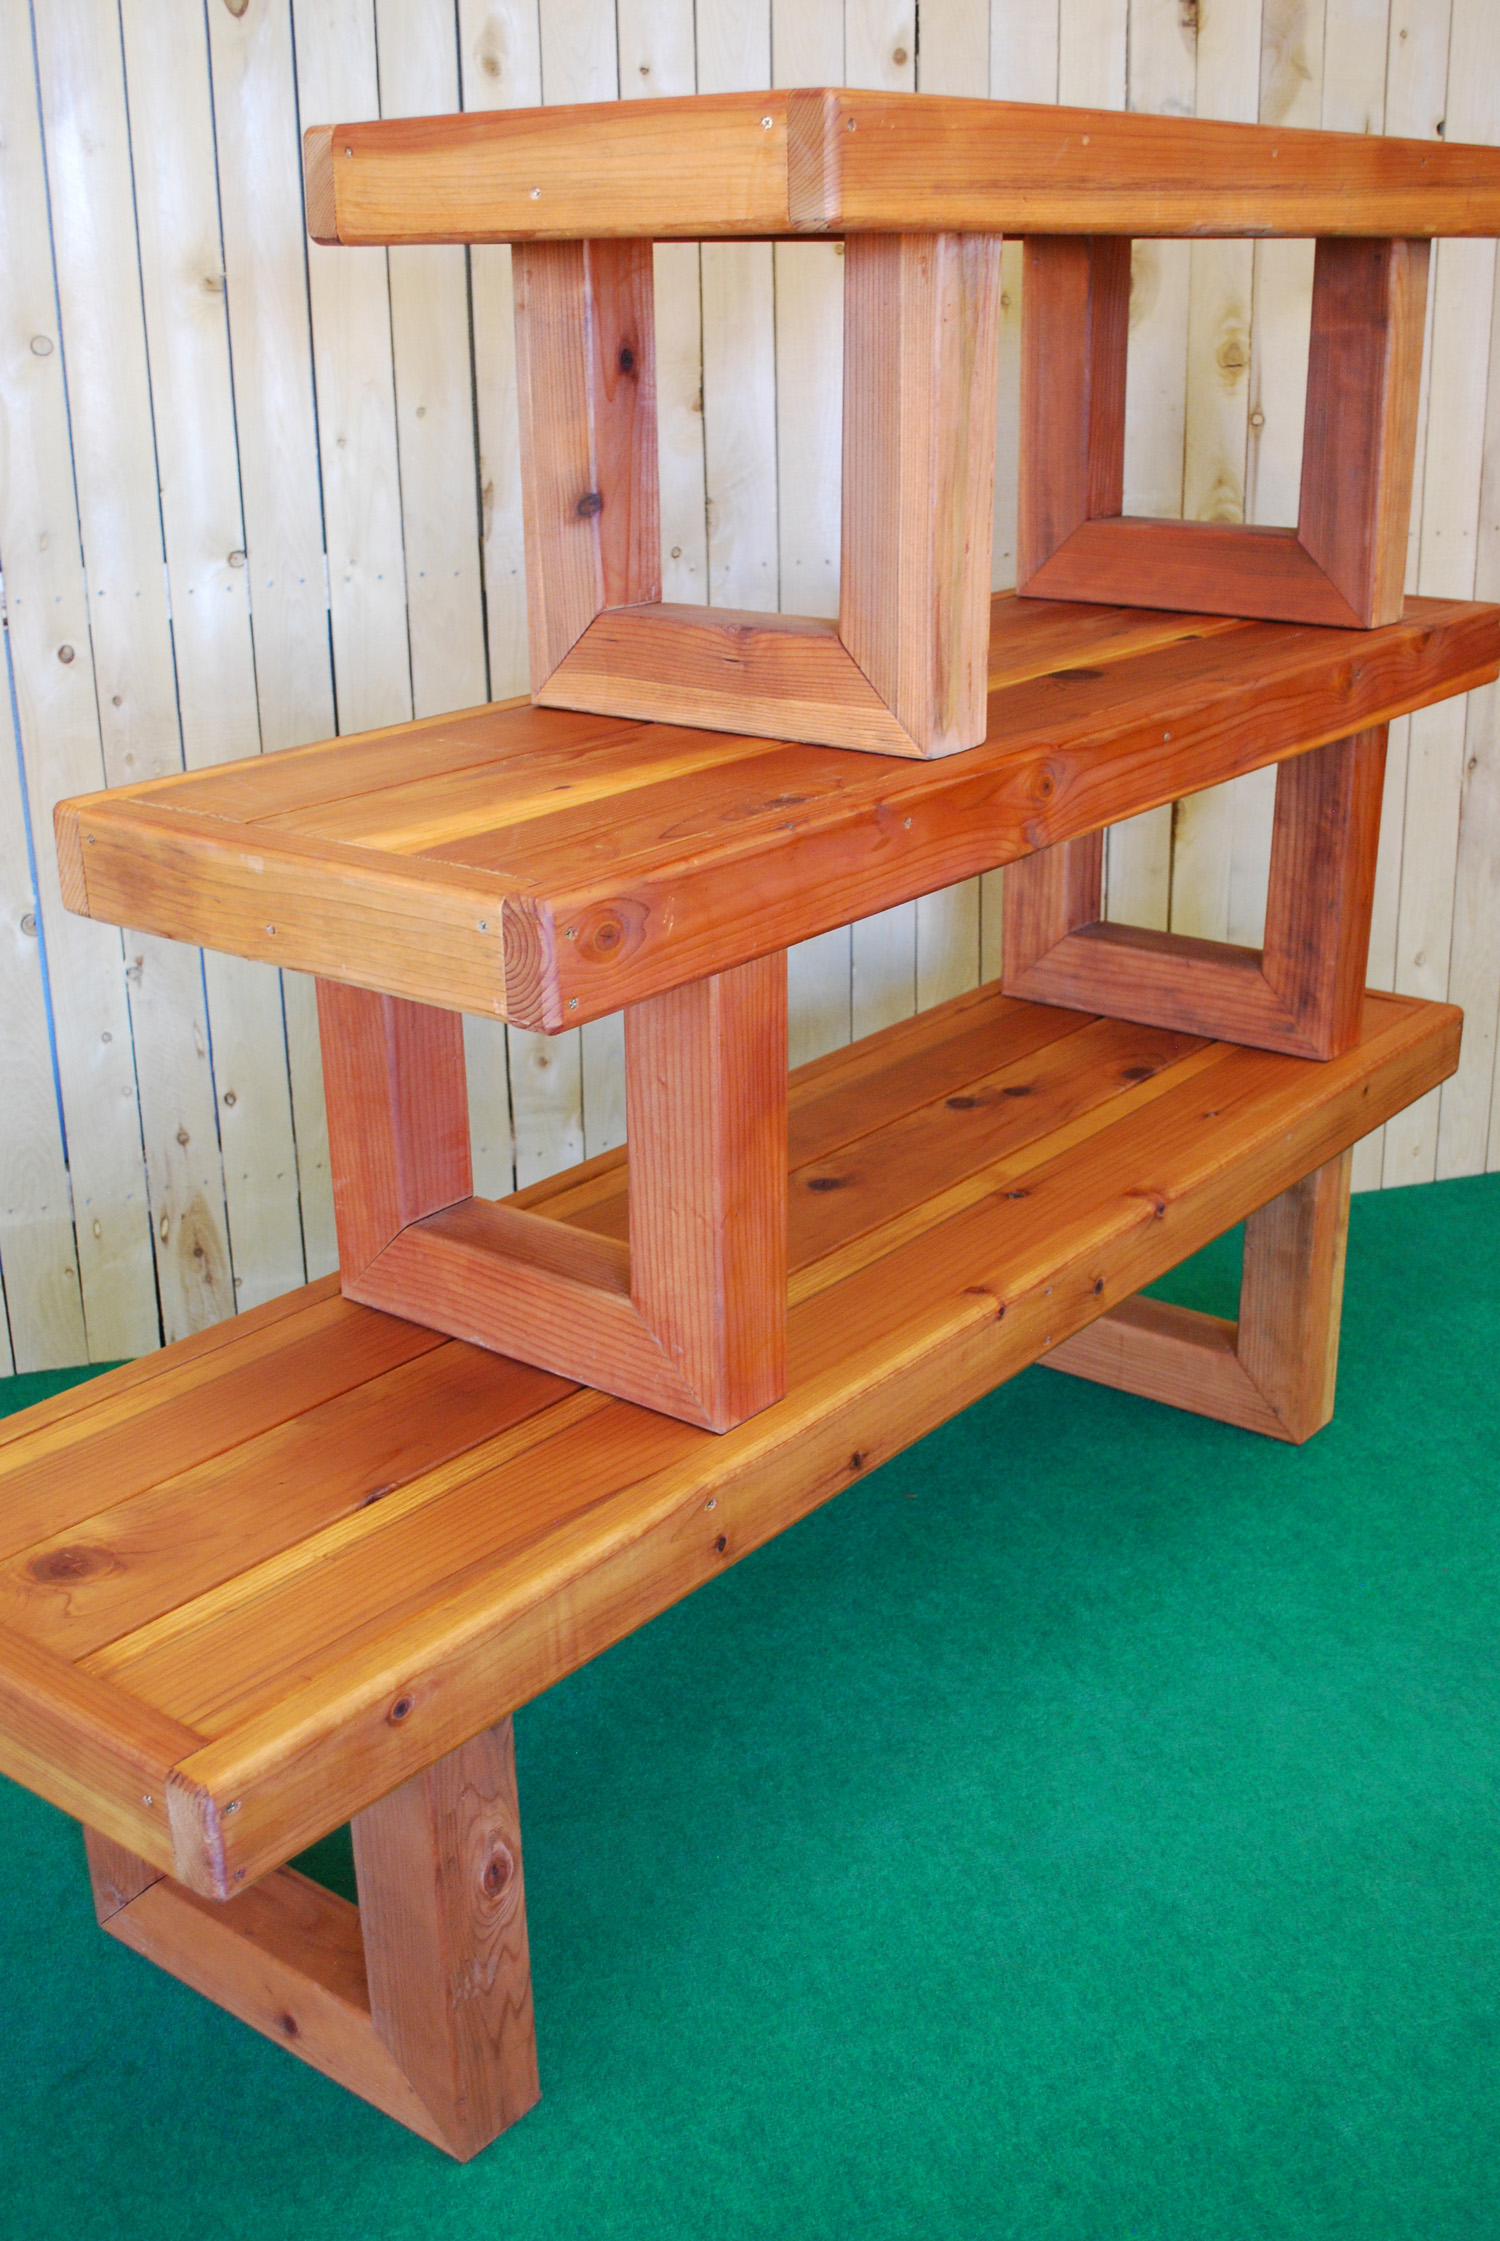 redwood contempo bench (all 3 sizes)